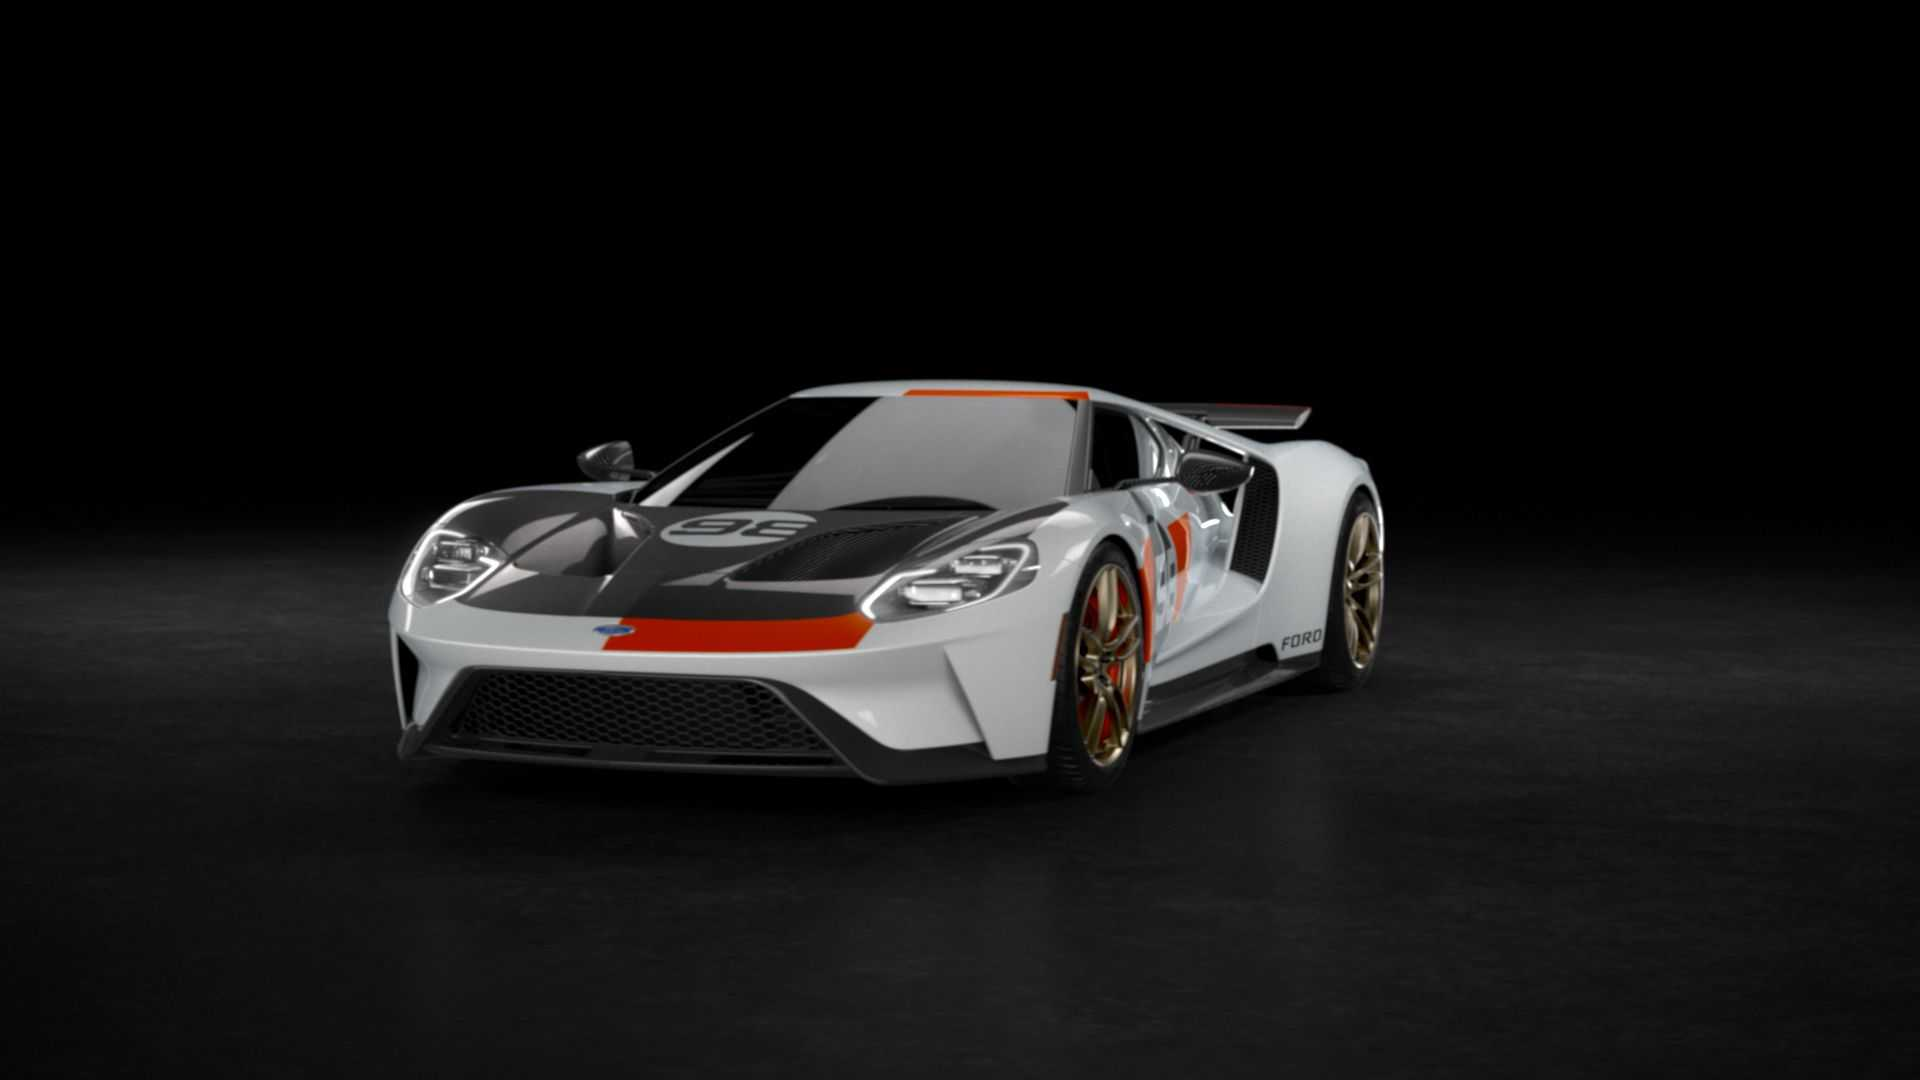 2021-ford-gt-heritage-edition-front-beauty-shot.jpg